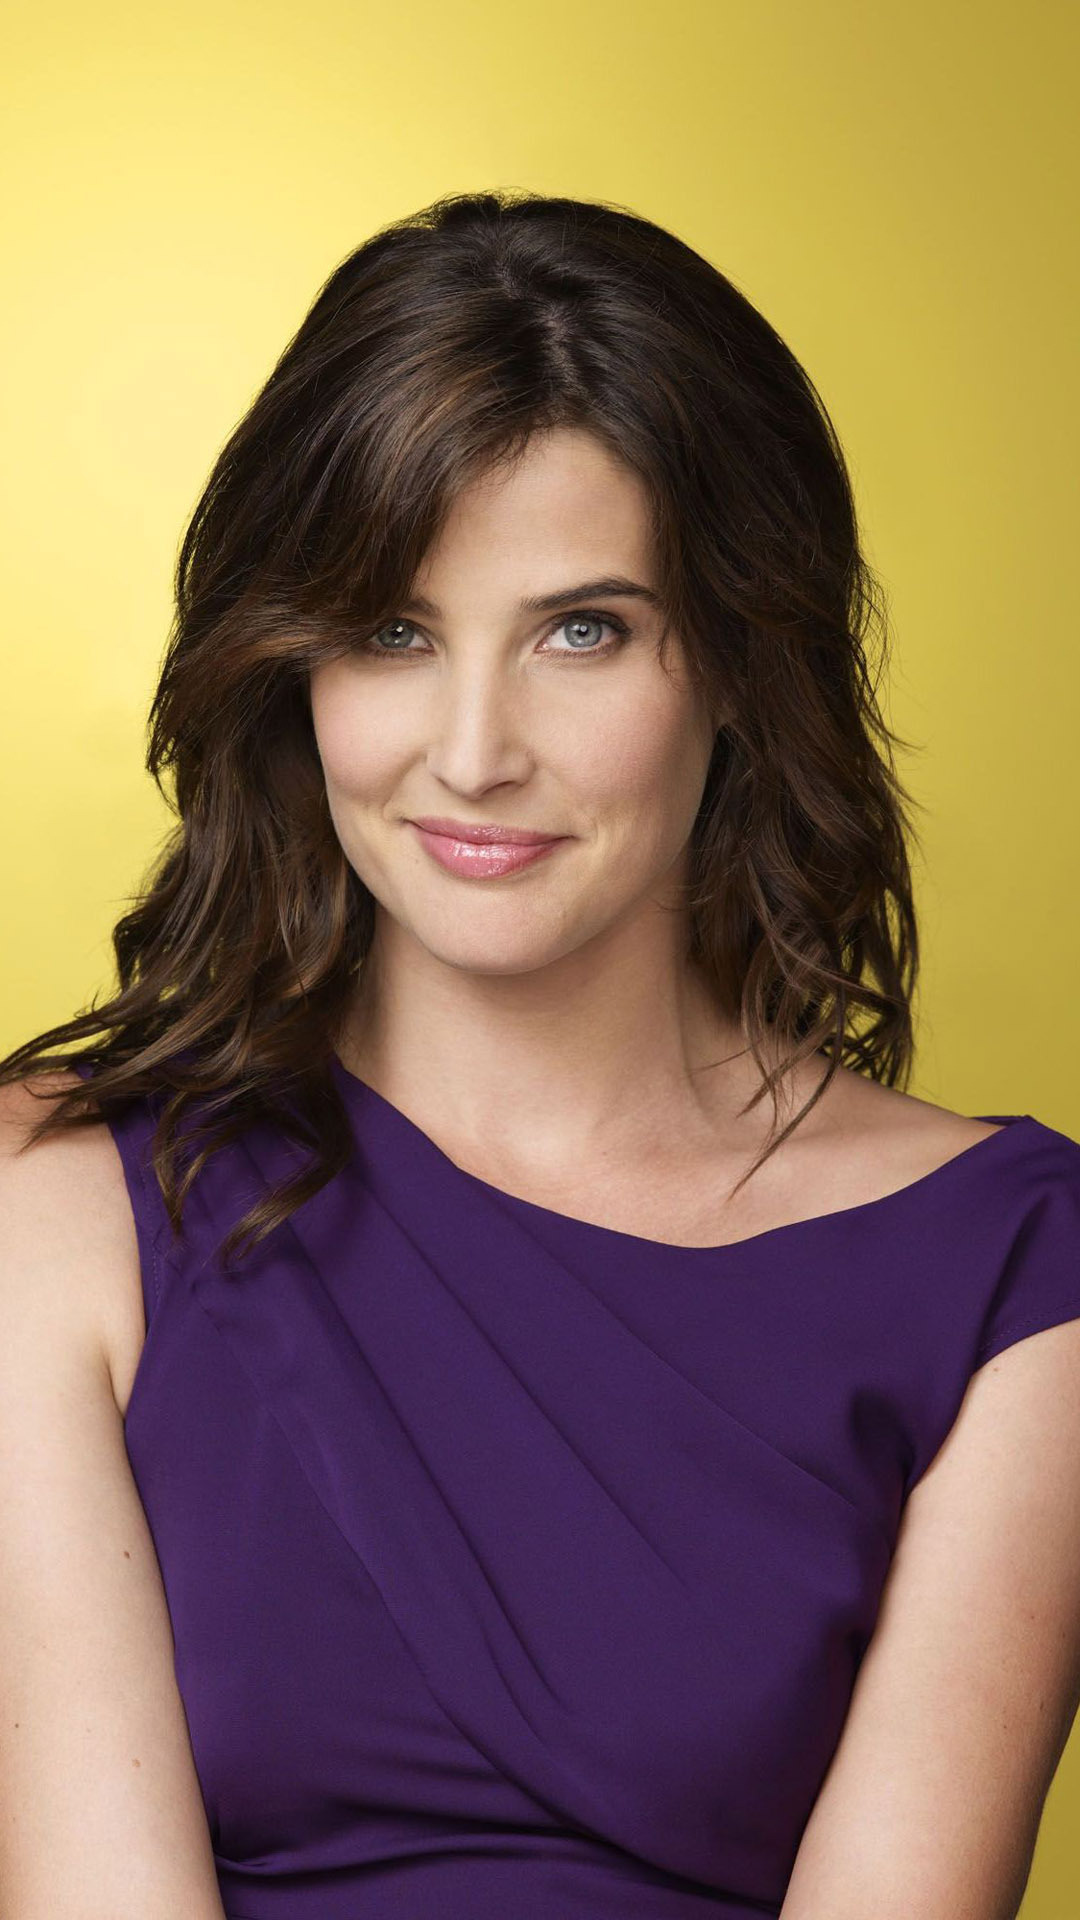 1080x1920 - Cobie Smulders Wallpapers 16